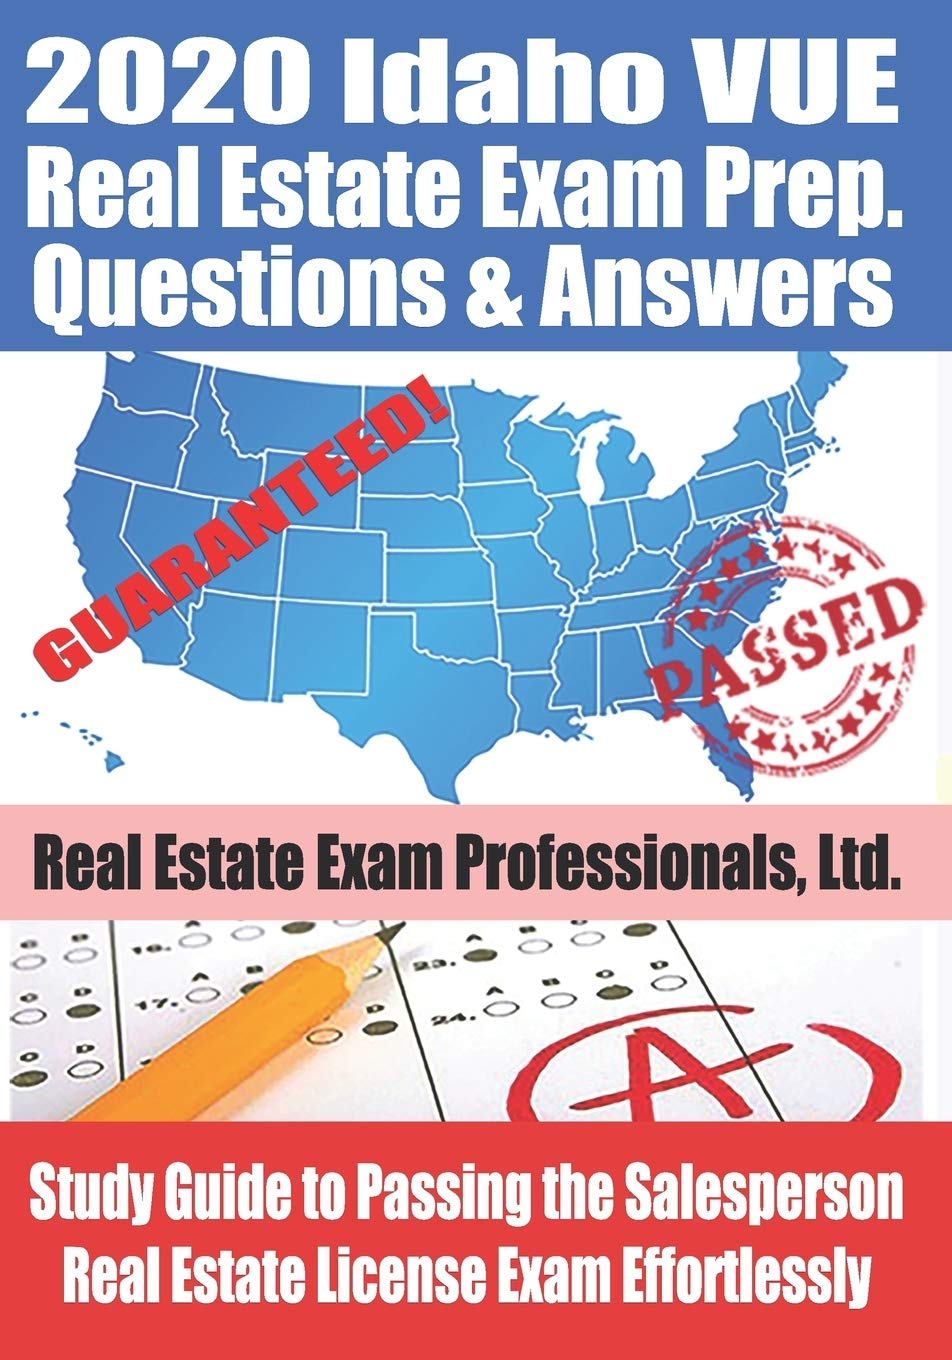 2020 Idaho VUE Real Estate Exam Prep Questions And Answers: Study Guide To Passing The Salesperson Real Estate License Exa...